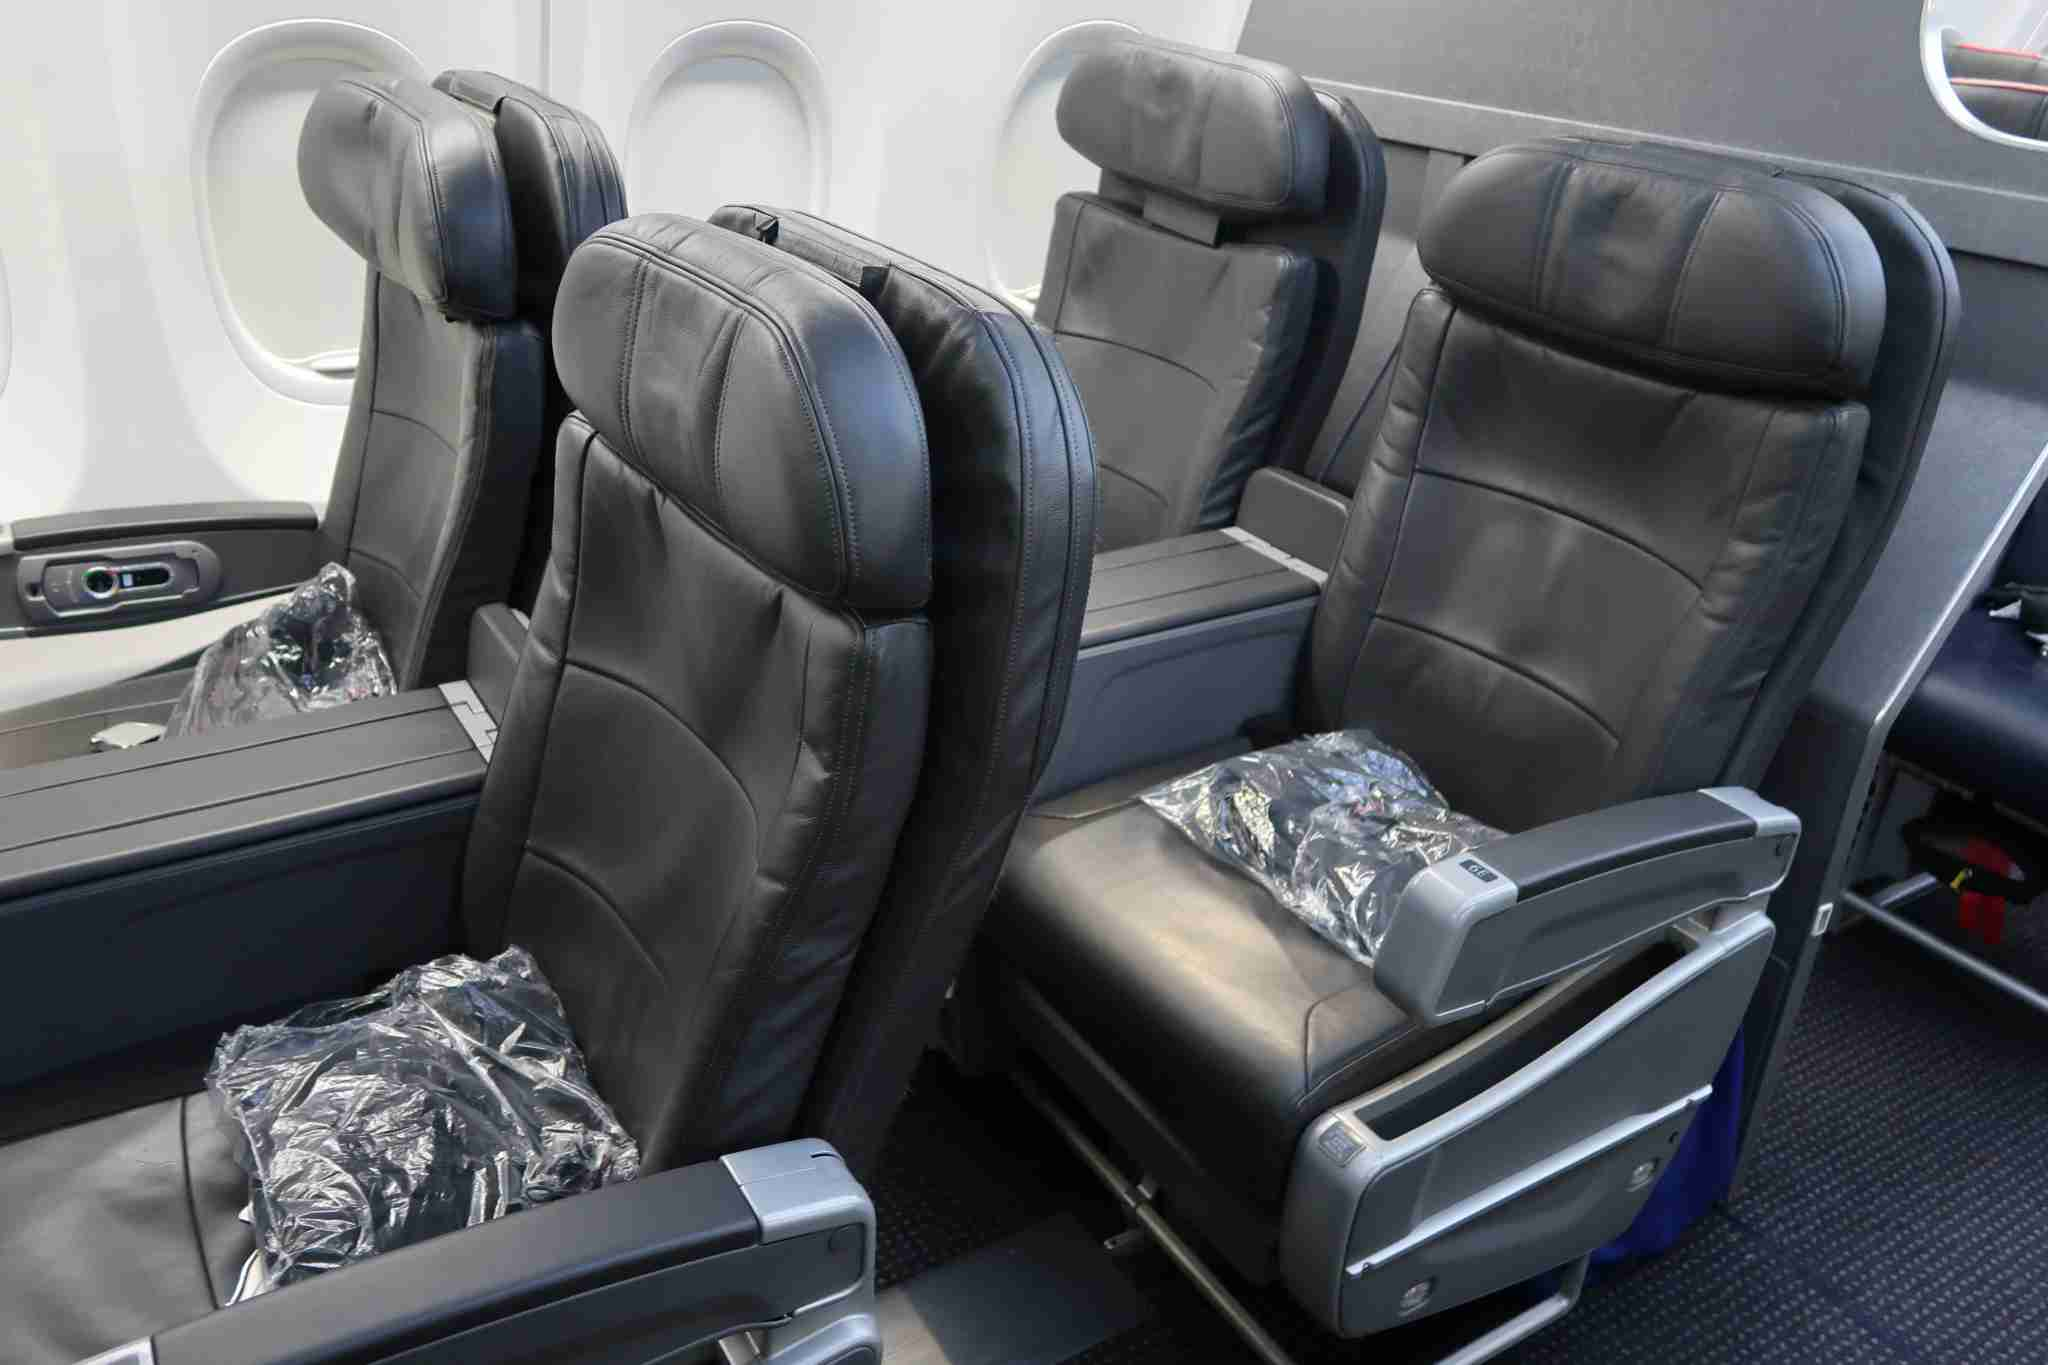 First class seats in a Legacy American Airlines 737-800. (Photo by JT Genter / The Points Guy.)